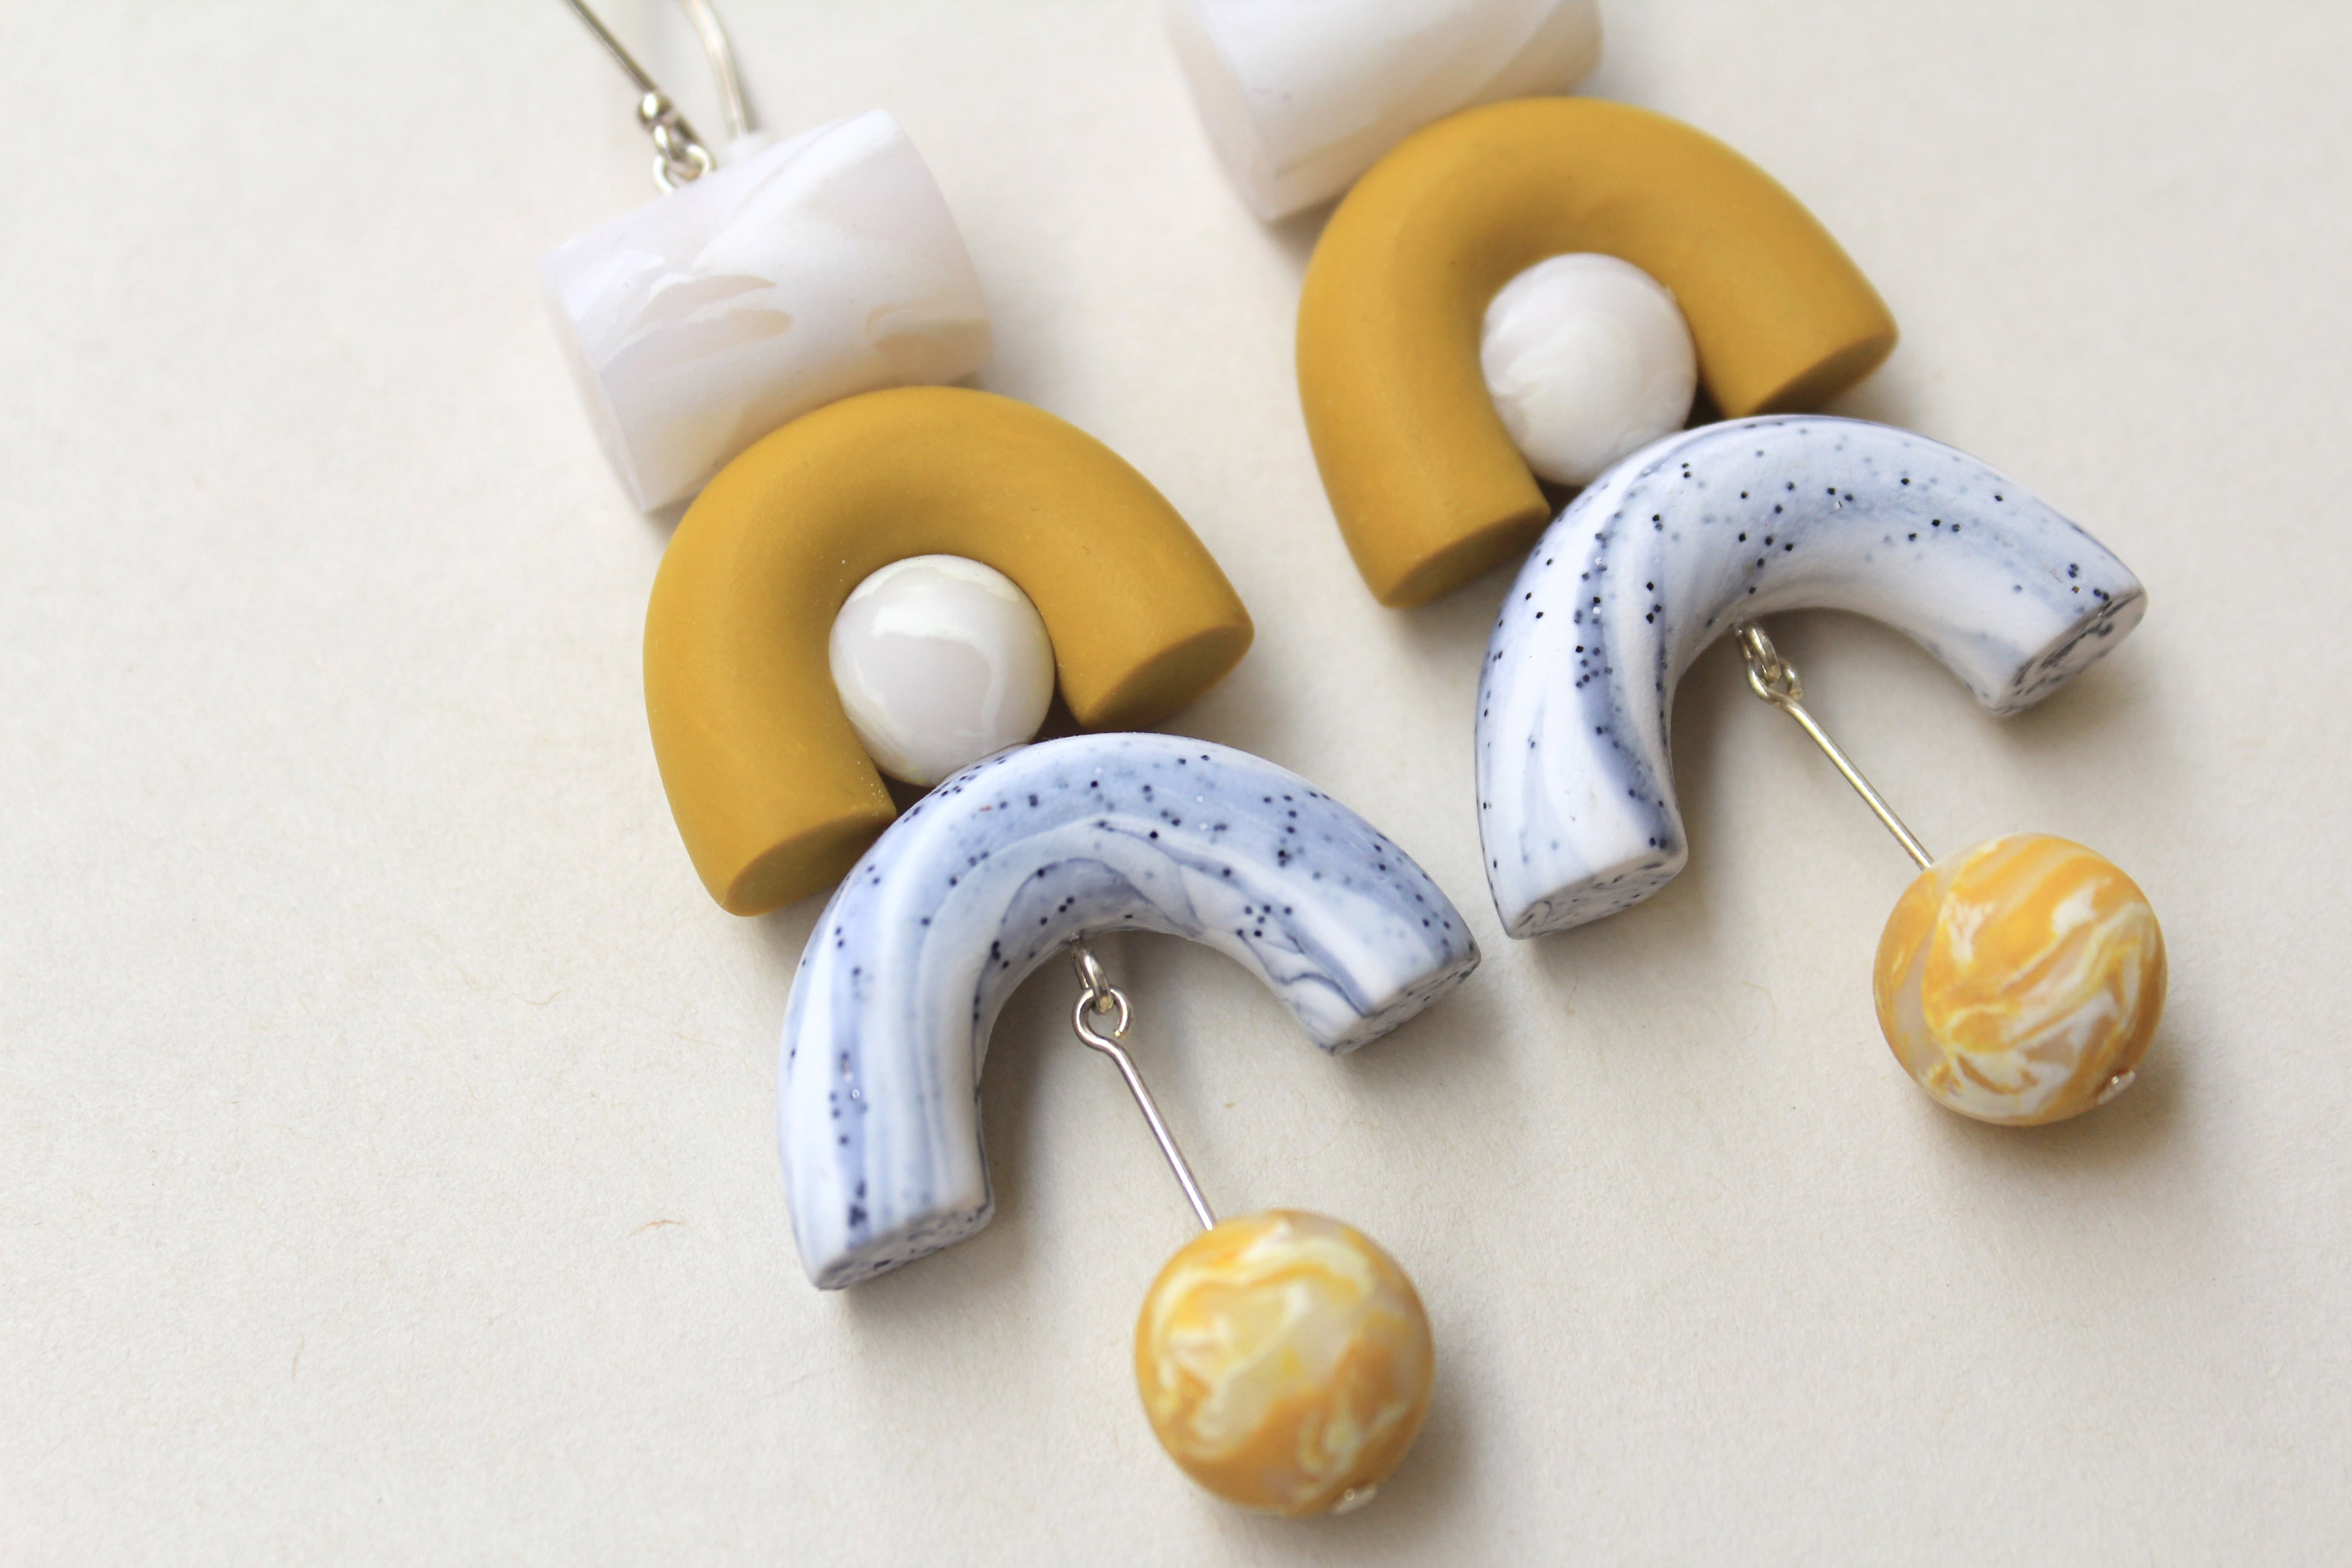 Tsunja Geometric Earrings in mustard, marble white with hanging balll made of polymer clay, Ook Earrings